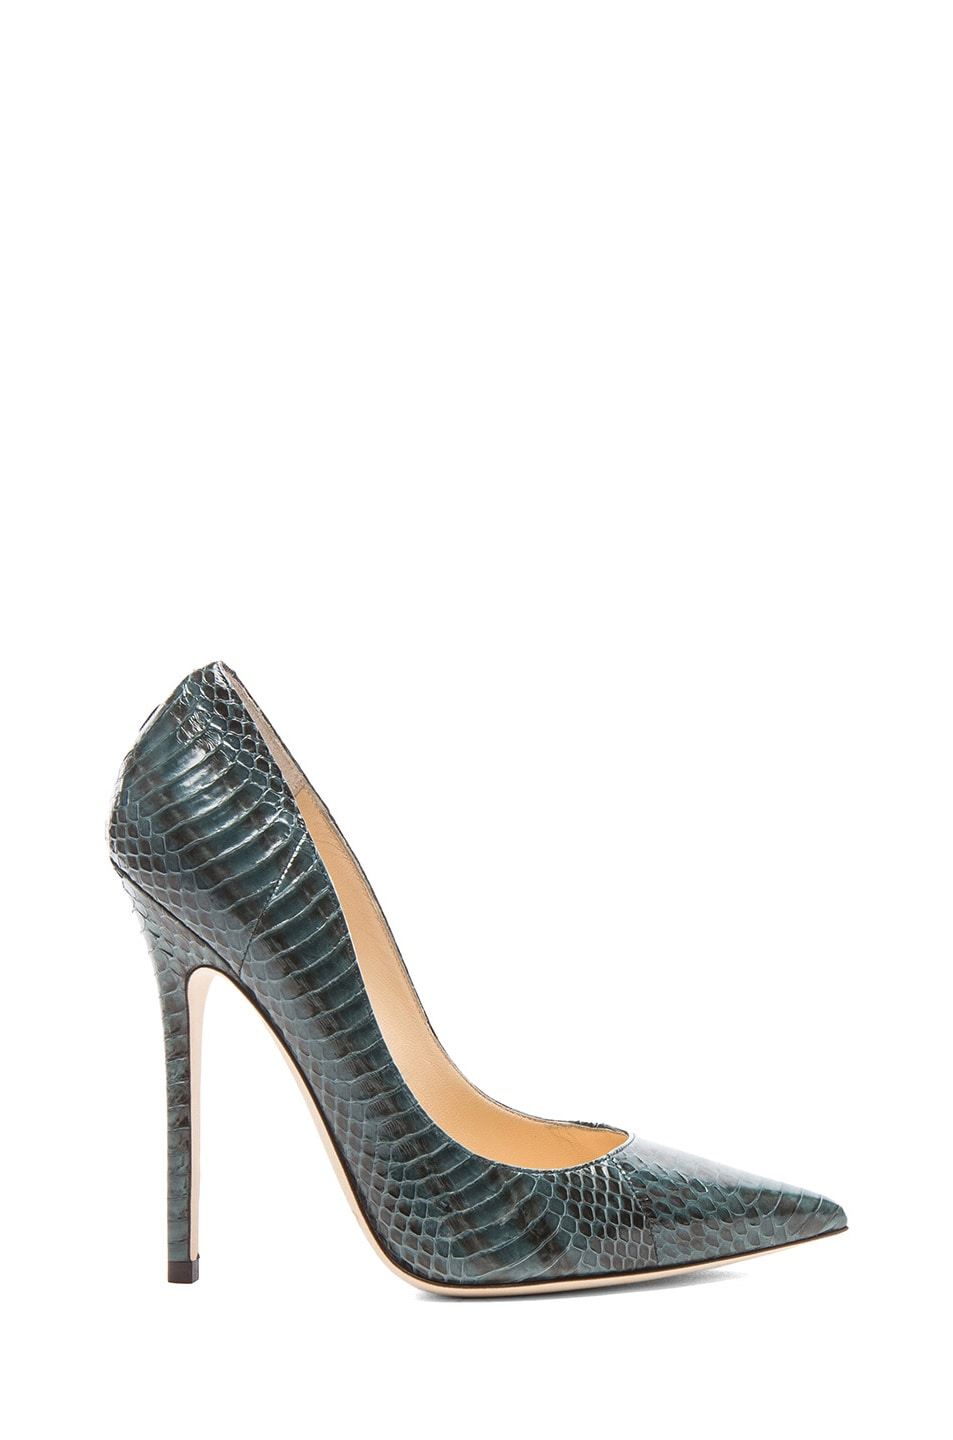 Image 1 of Jimmy Choo Glossy Panelled Anouk Elaphe Snakeskin Pumps in Evergreen